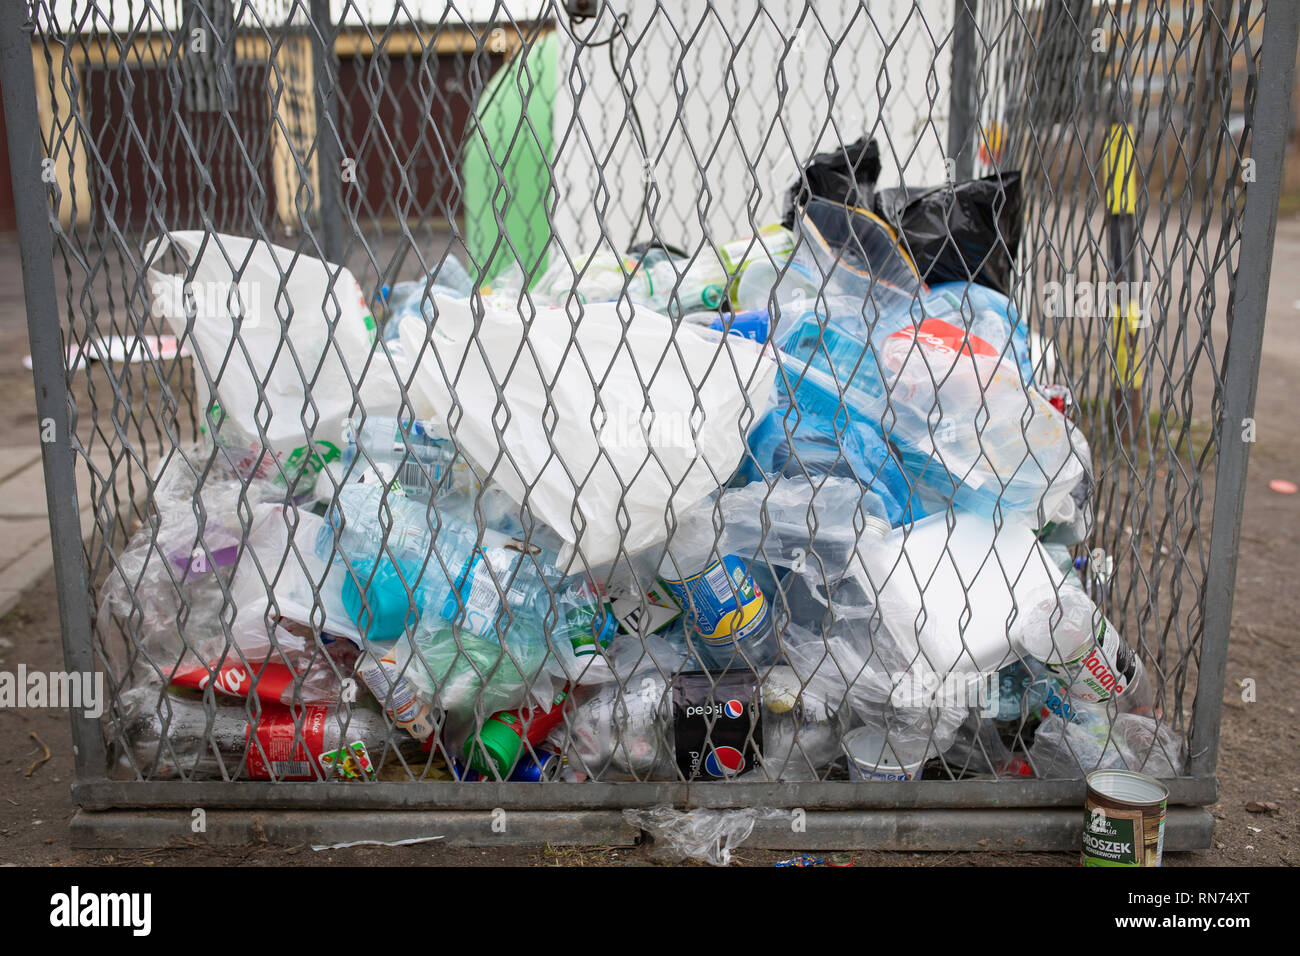 Plastic waste container. Garbage, mess, rubbish, bottles on the ground. Gniezno / Poland - Stock Image